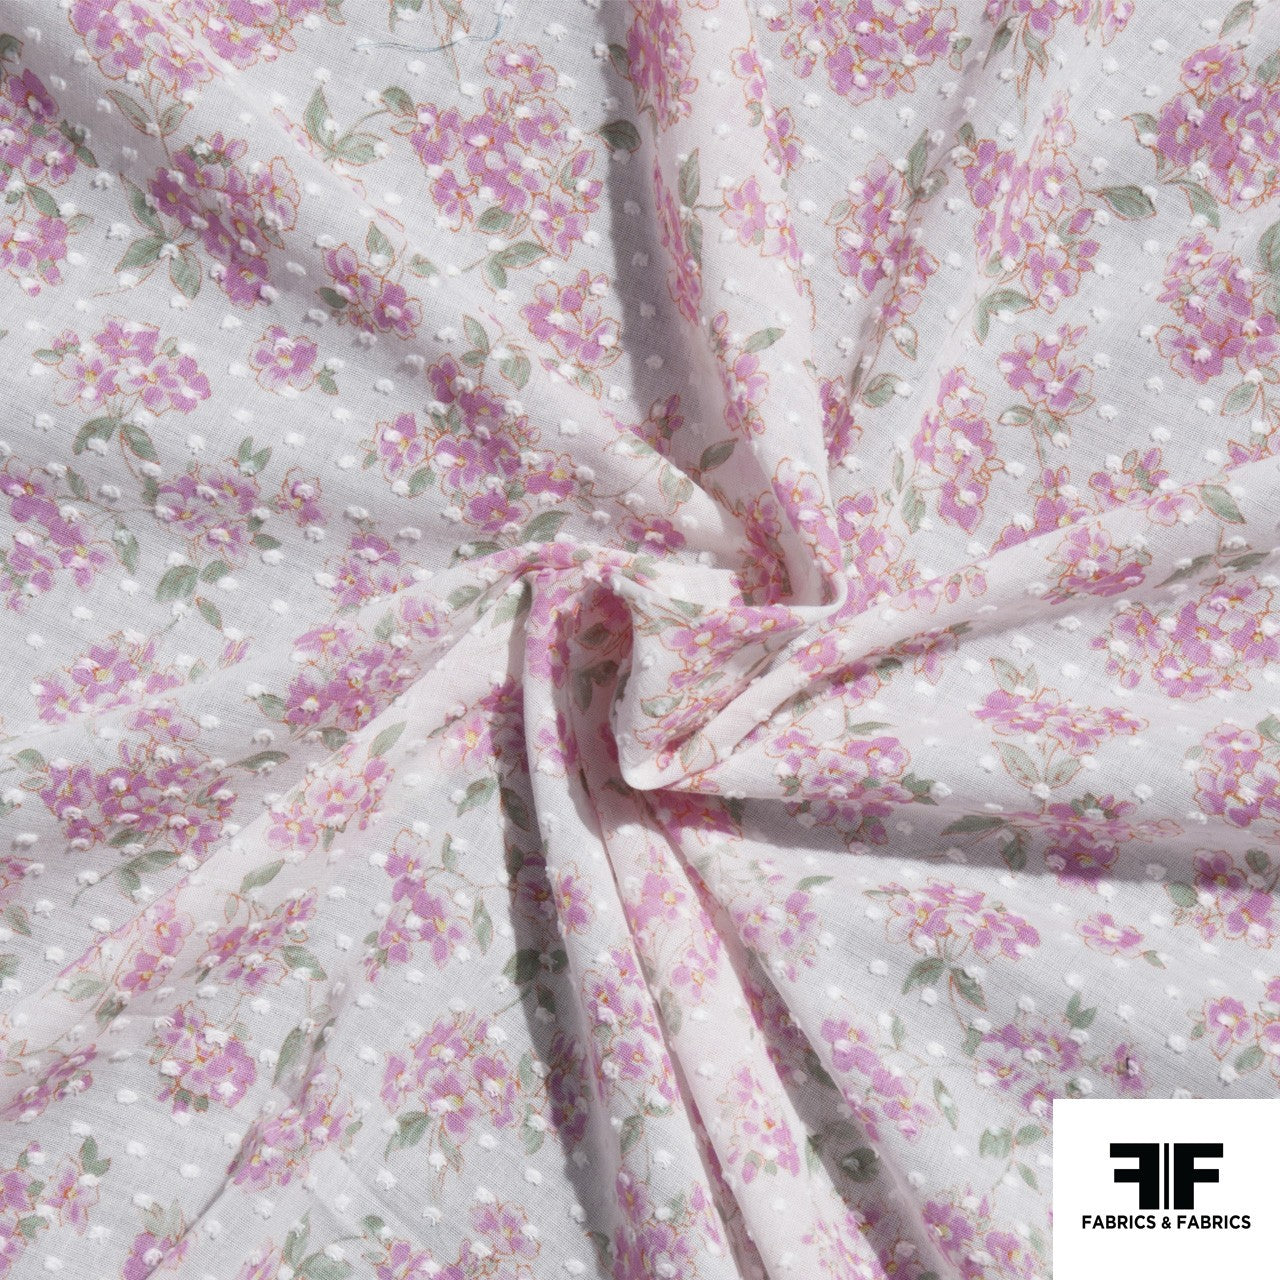 Floral and Swiss Dot Printed Cotton - Pink/White - Fabrics & Fabrics NY